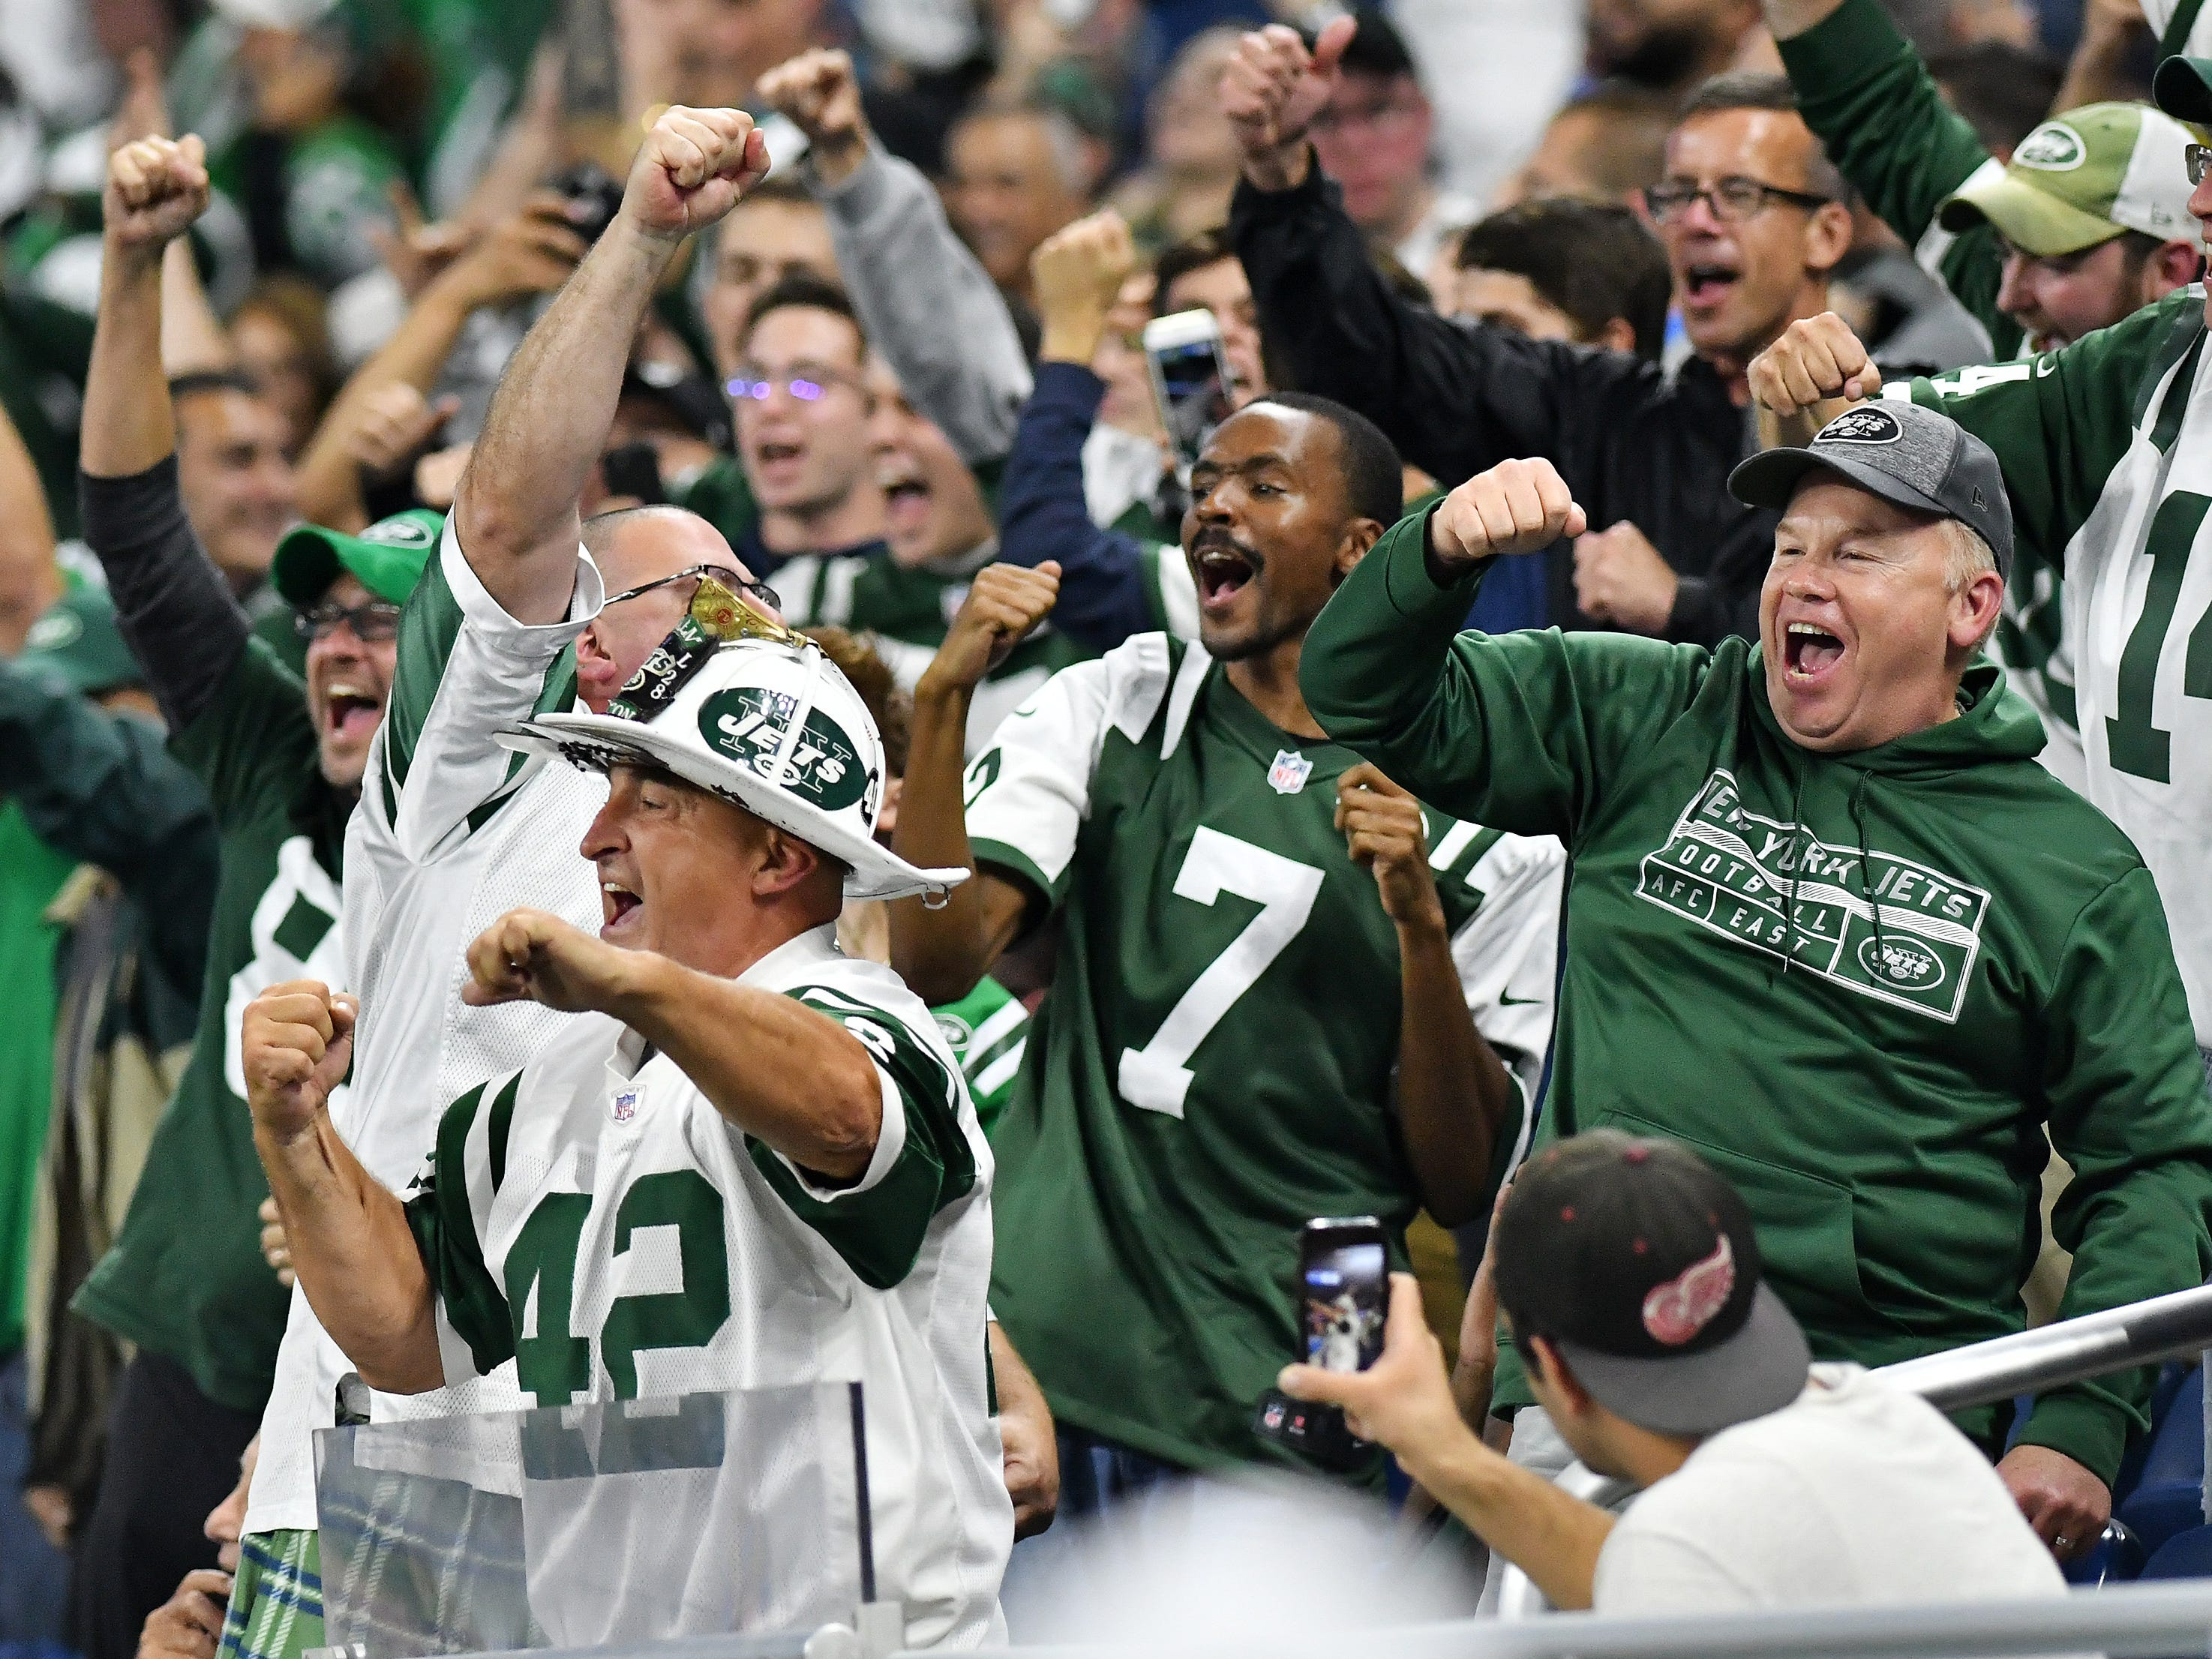 Jets fans celebrate the score of 48-17 late in the fourth quarter.